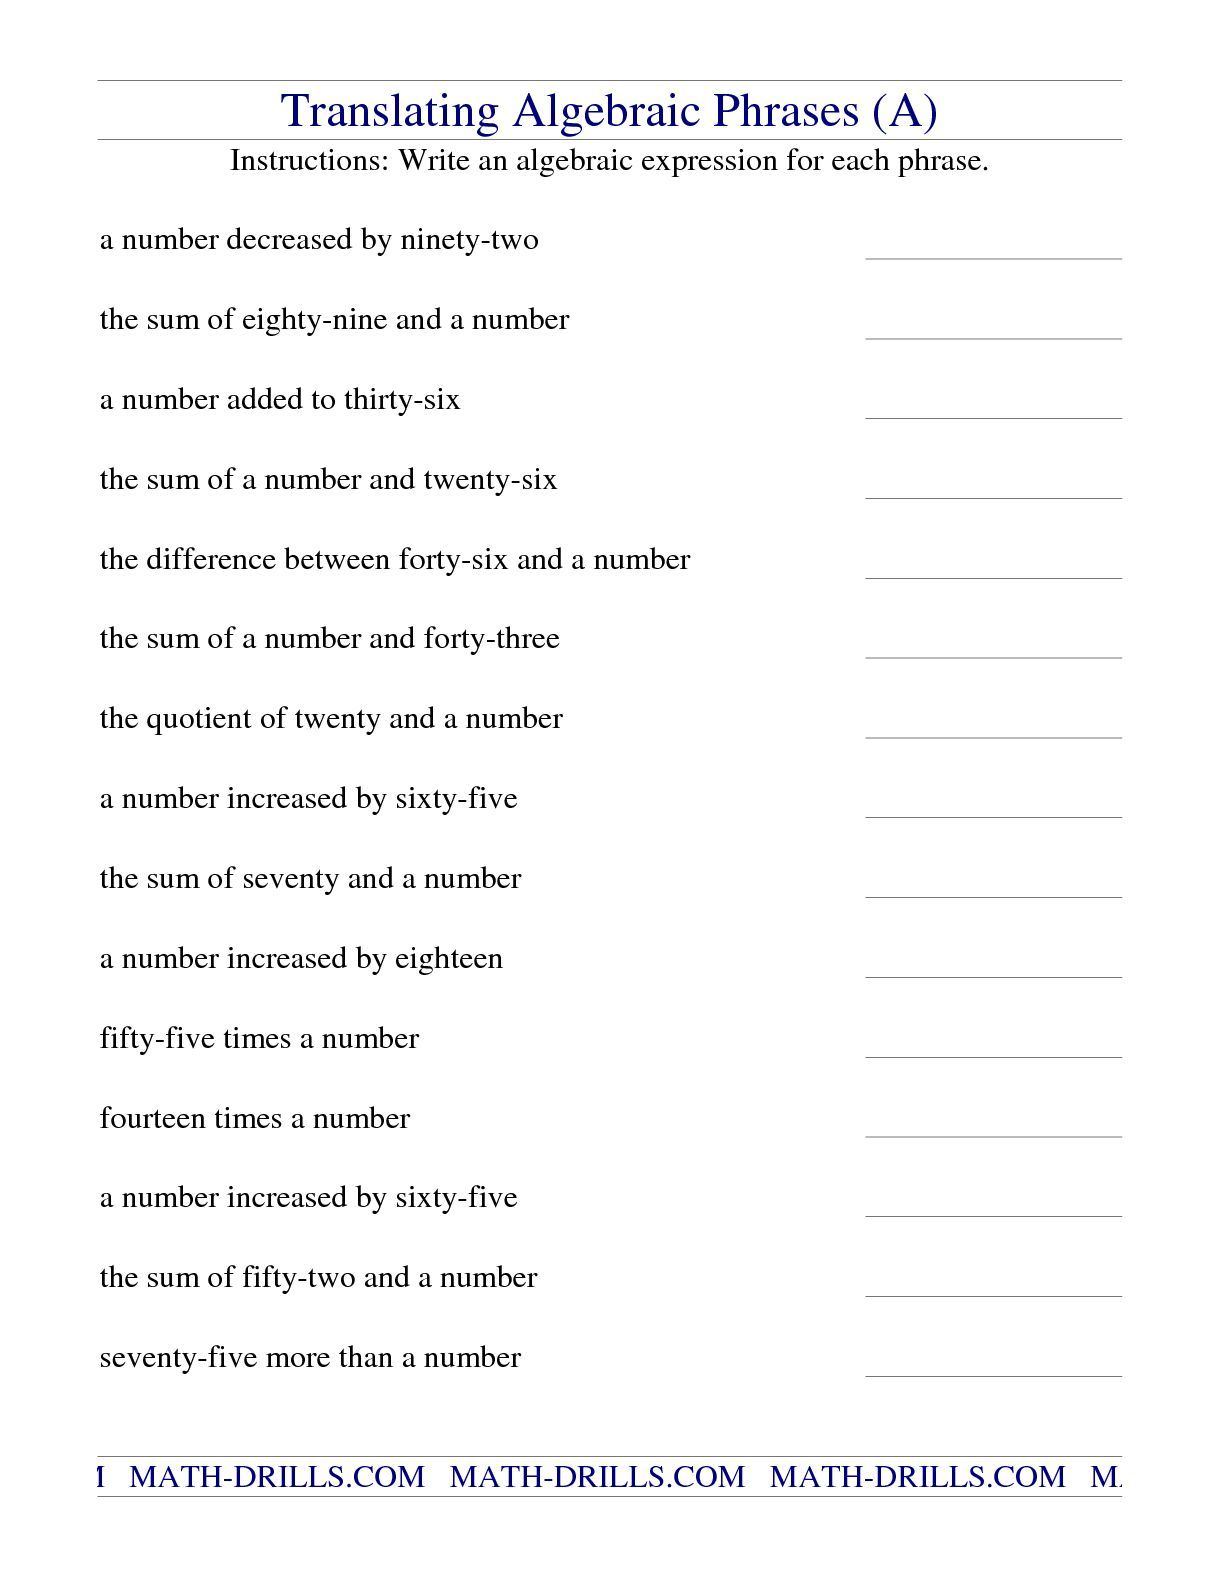 The Translating Algebraic Phrases A Math Worksheet From